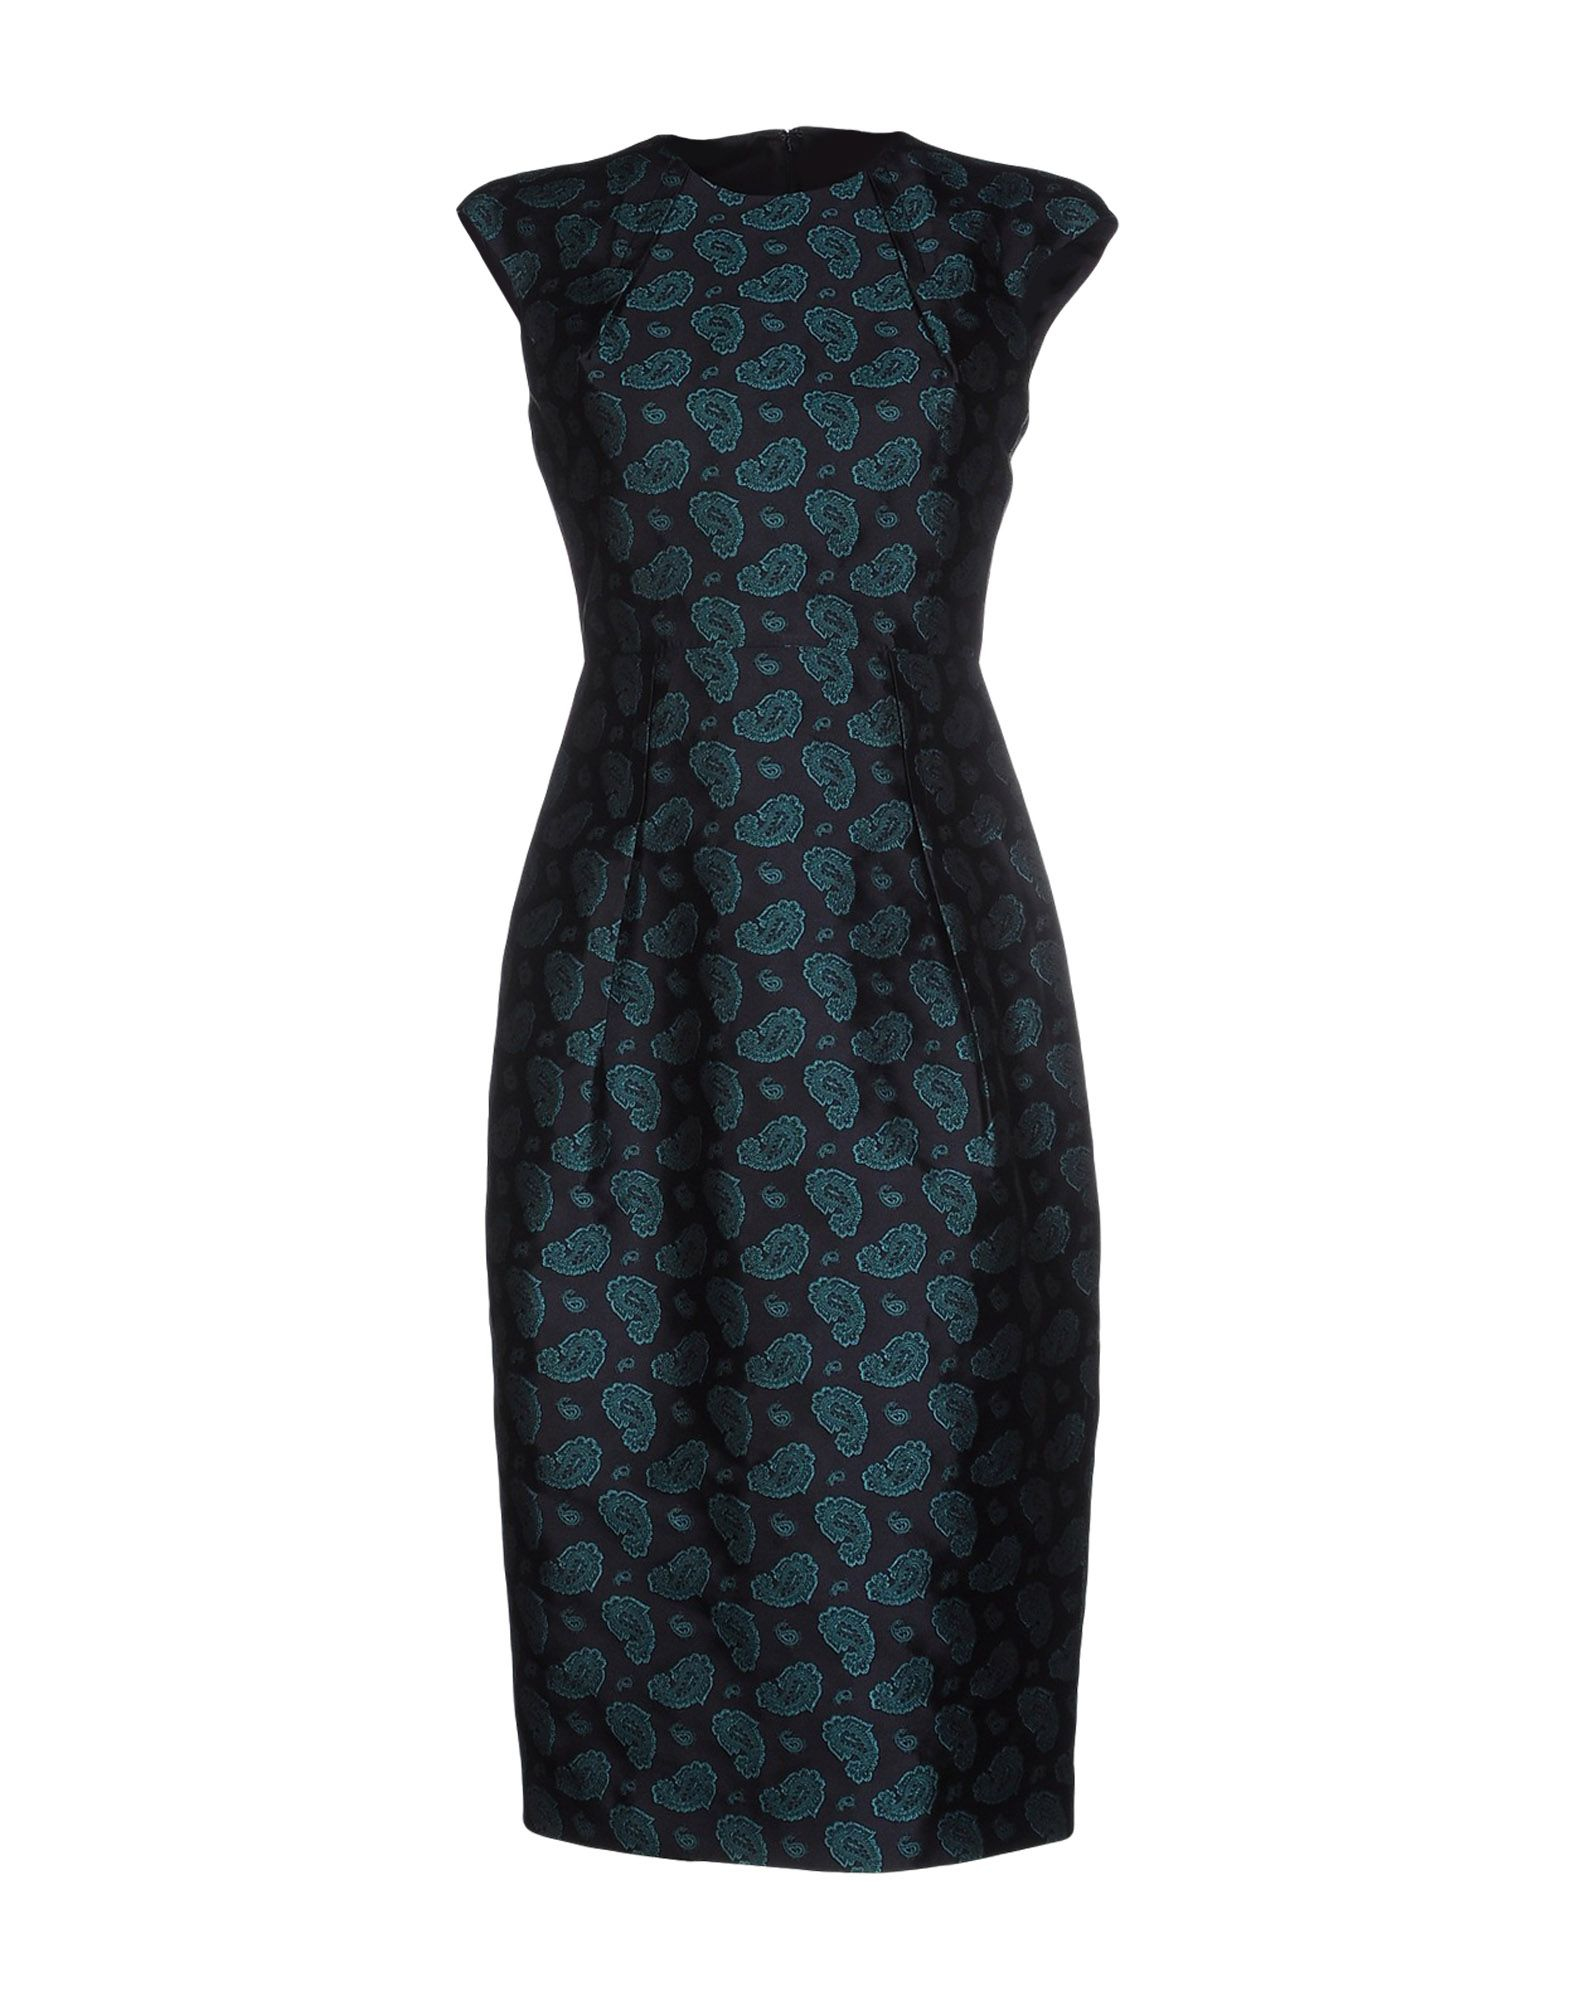 Michael kors knee length dress in blue dark blue lyst for 20 34 35 dress shirts